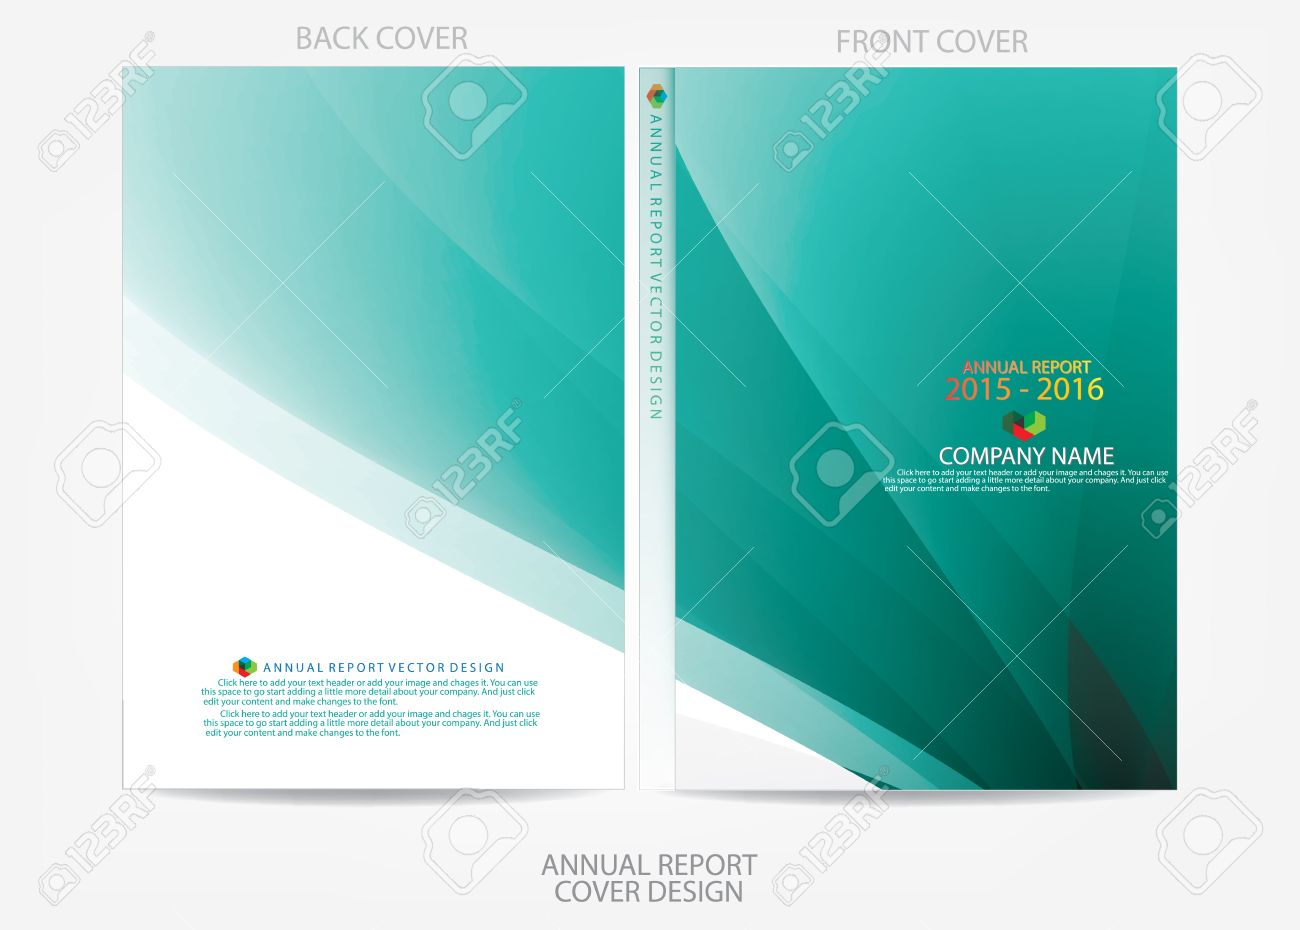 annual report cover design royalty cliparts vectors and annual report cover design stock vector 36165759